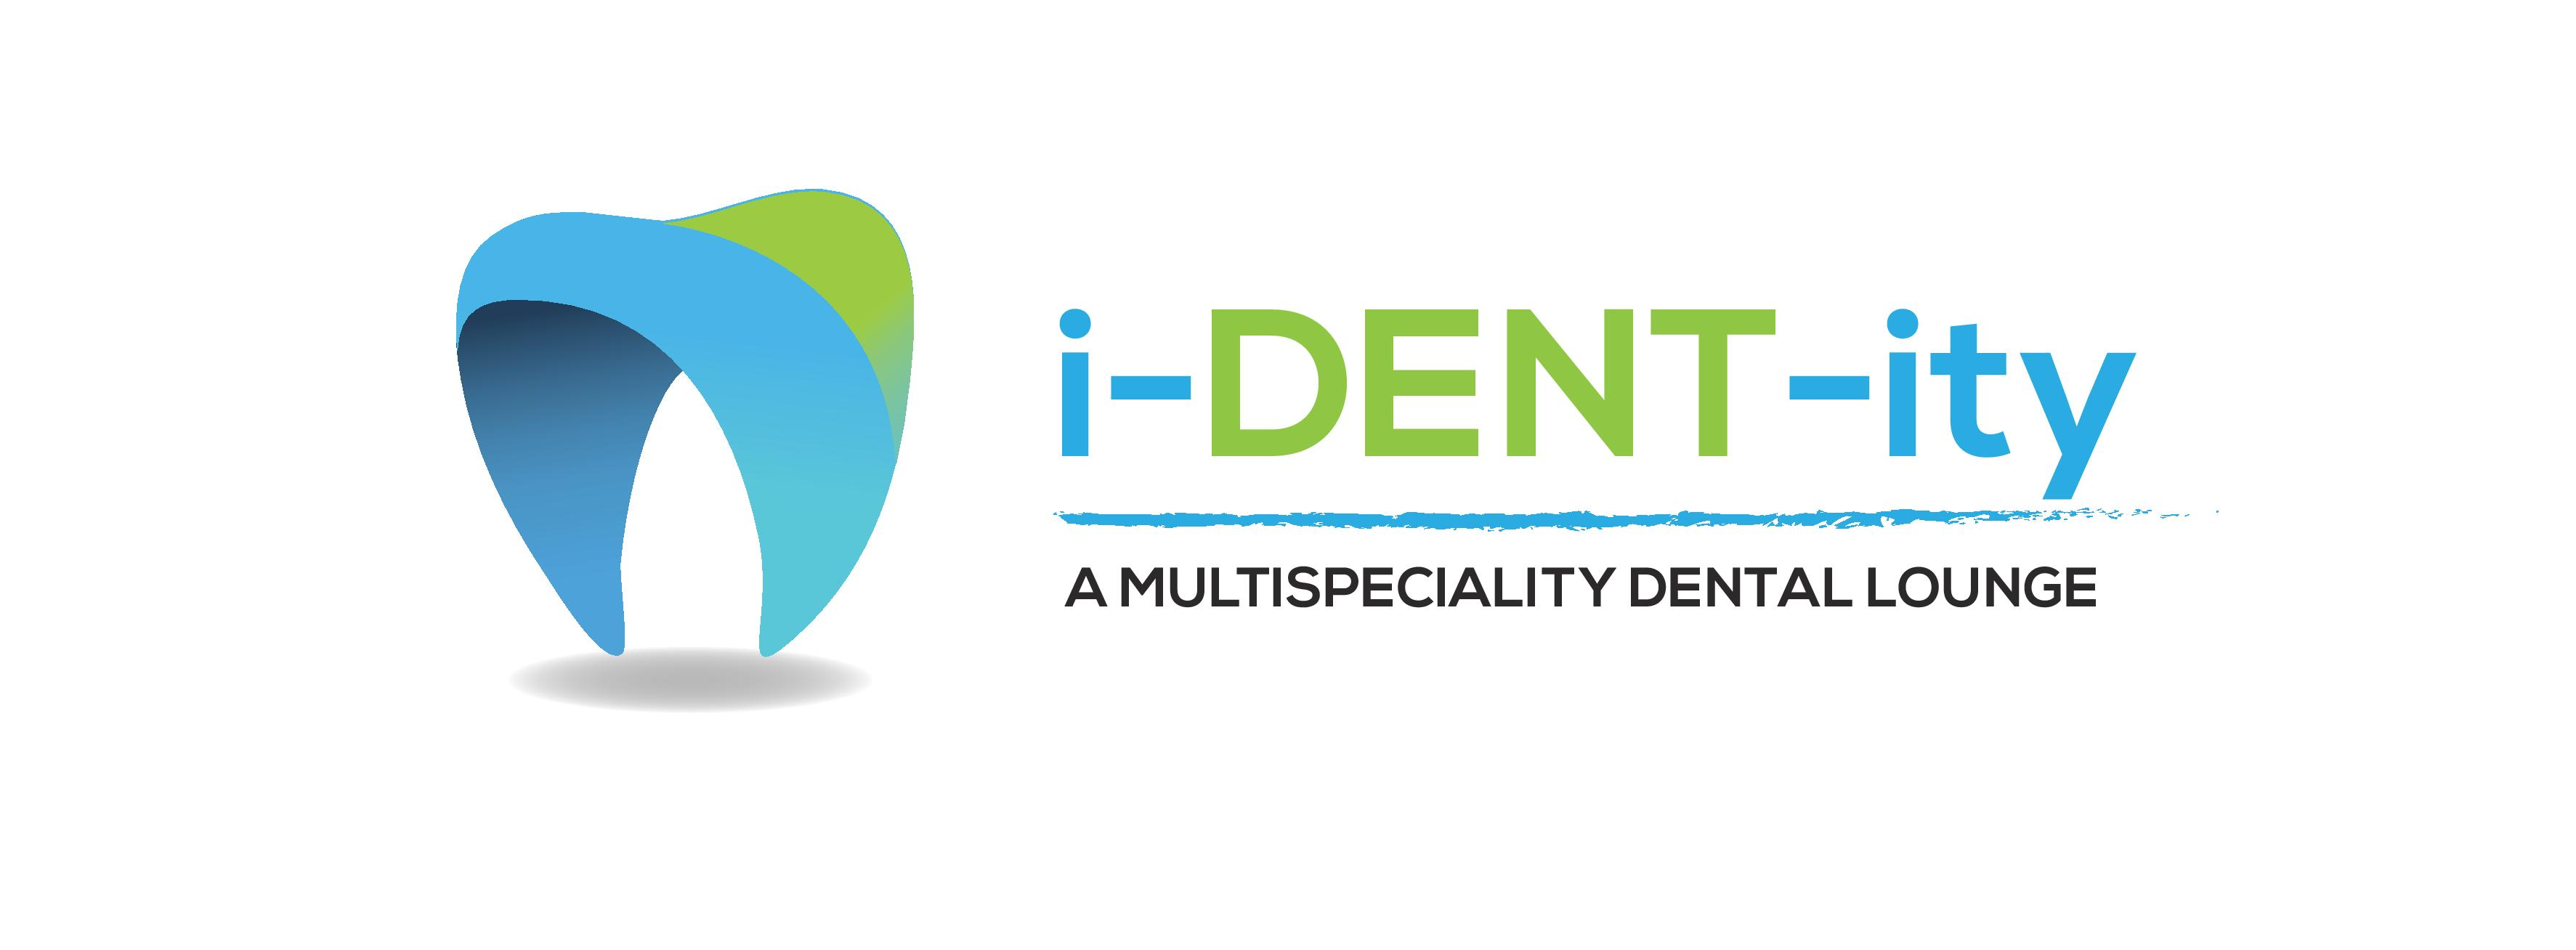 Identity Dental Lounge